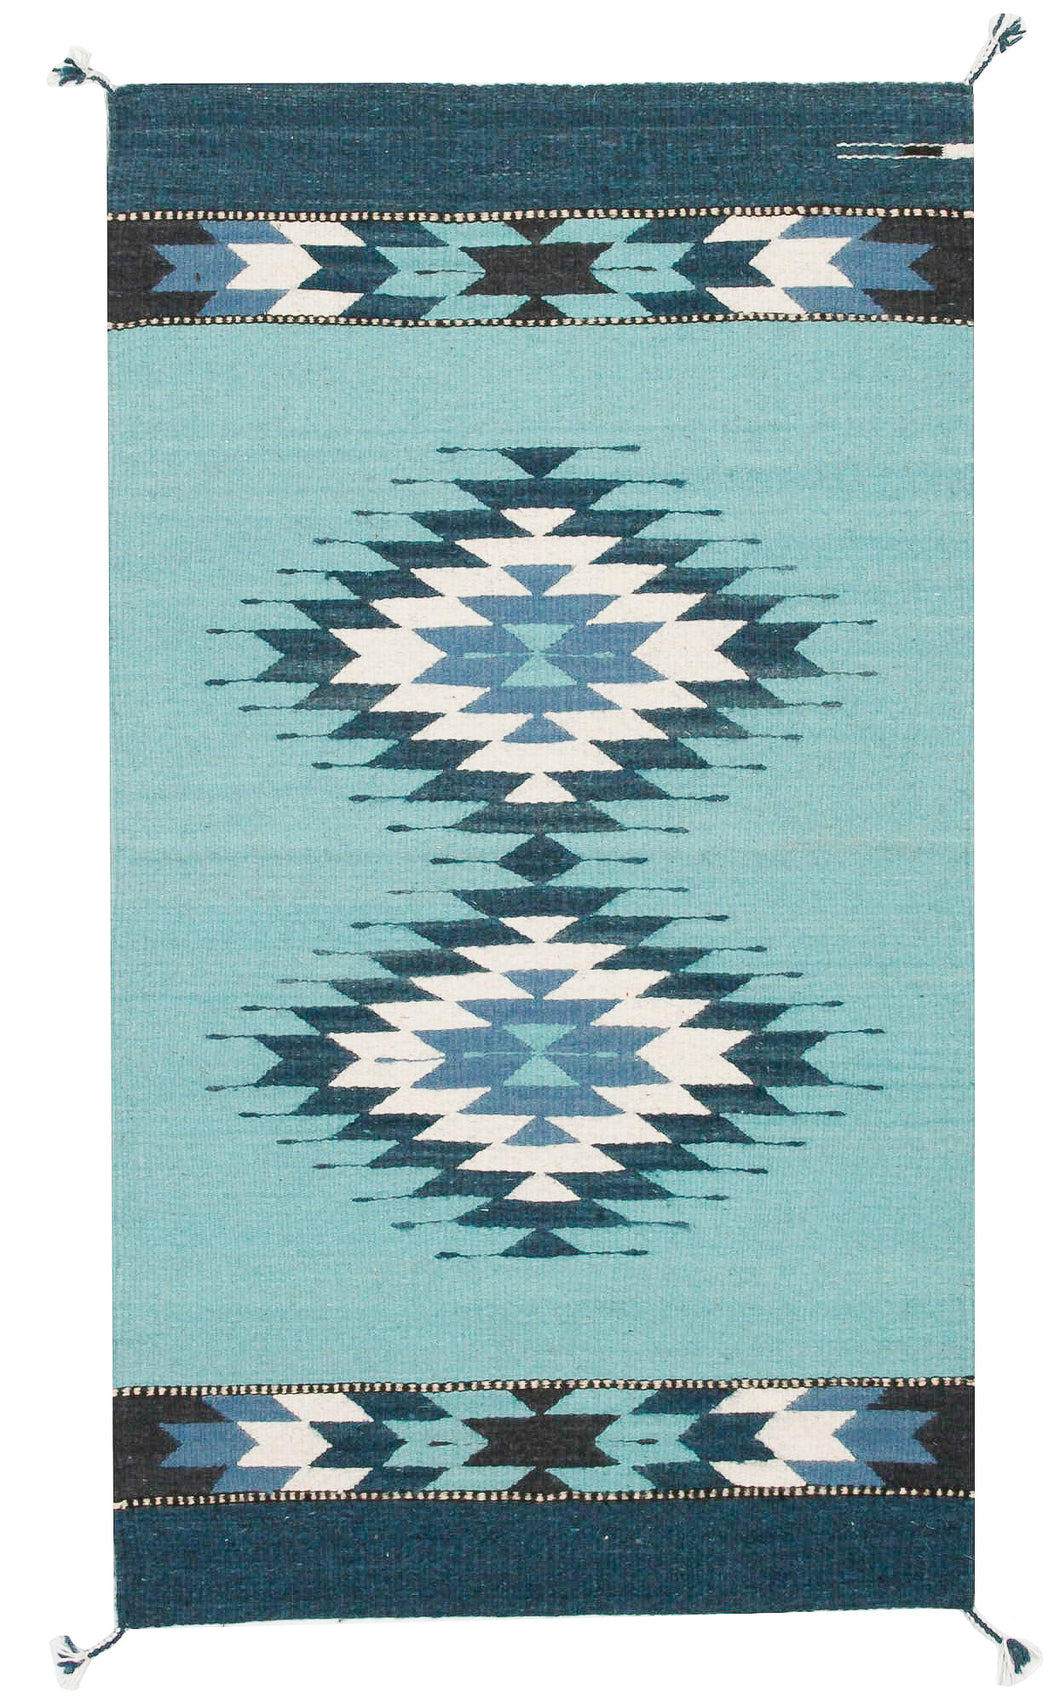 Handwoven Zapotec Indian Rug - Doble Diamante Azul Wool Oaxacan Textile